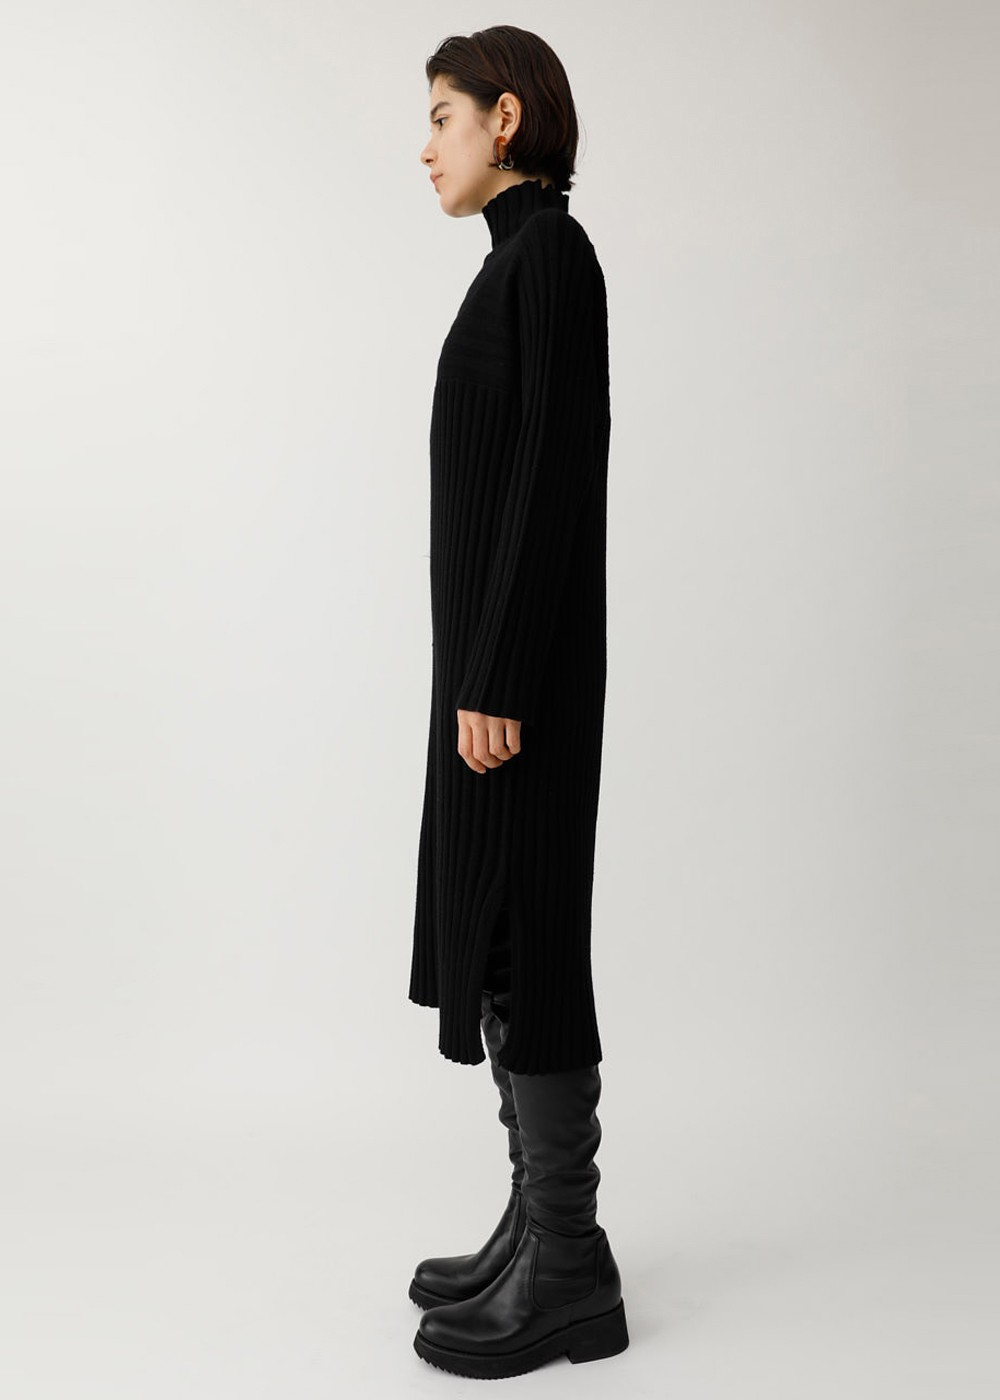 【最大60%OFF】SWITCHING RIB TURTLE DRESS|BLK|レディースワンピース|MOUSSY